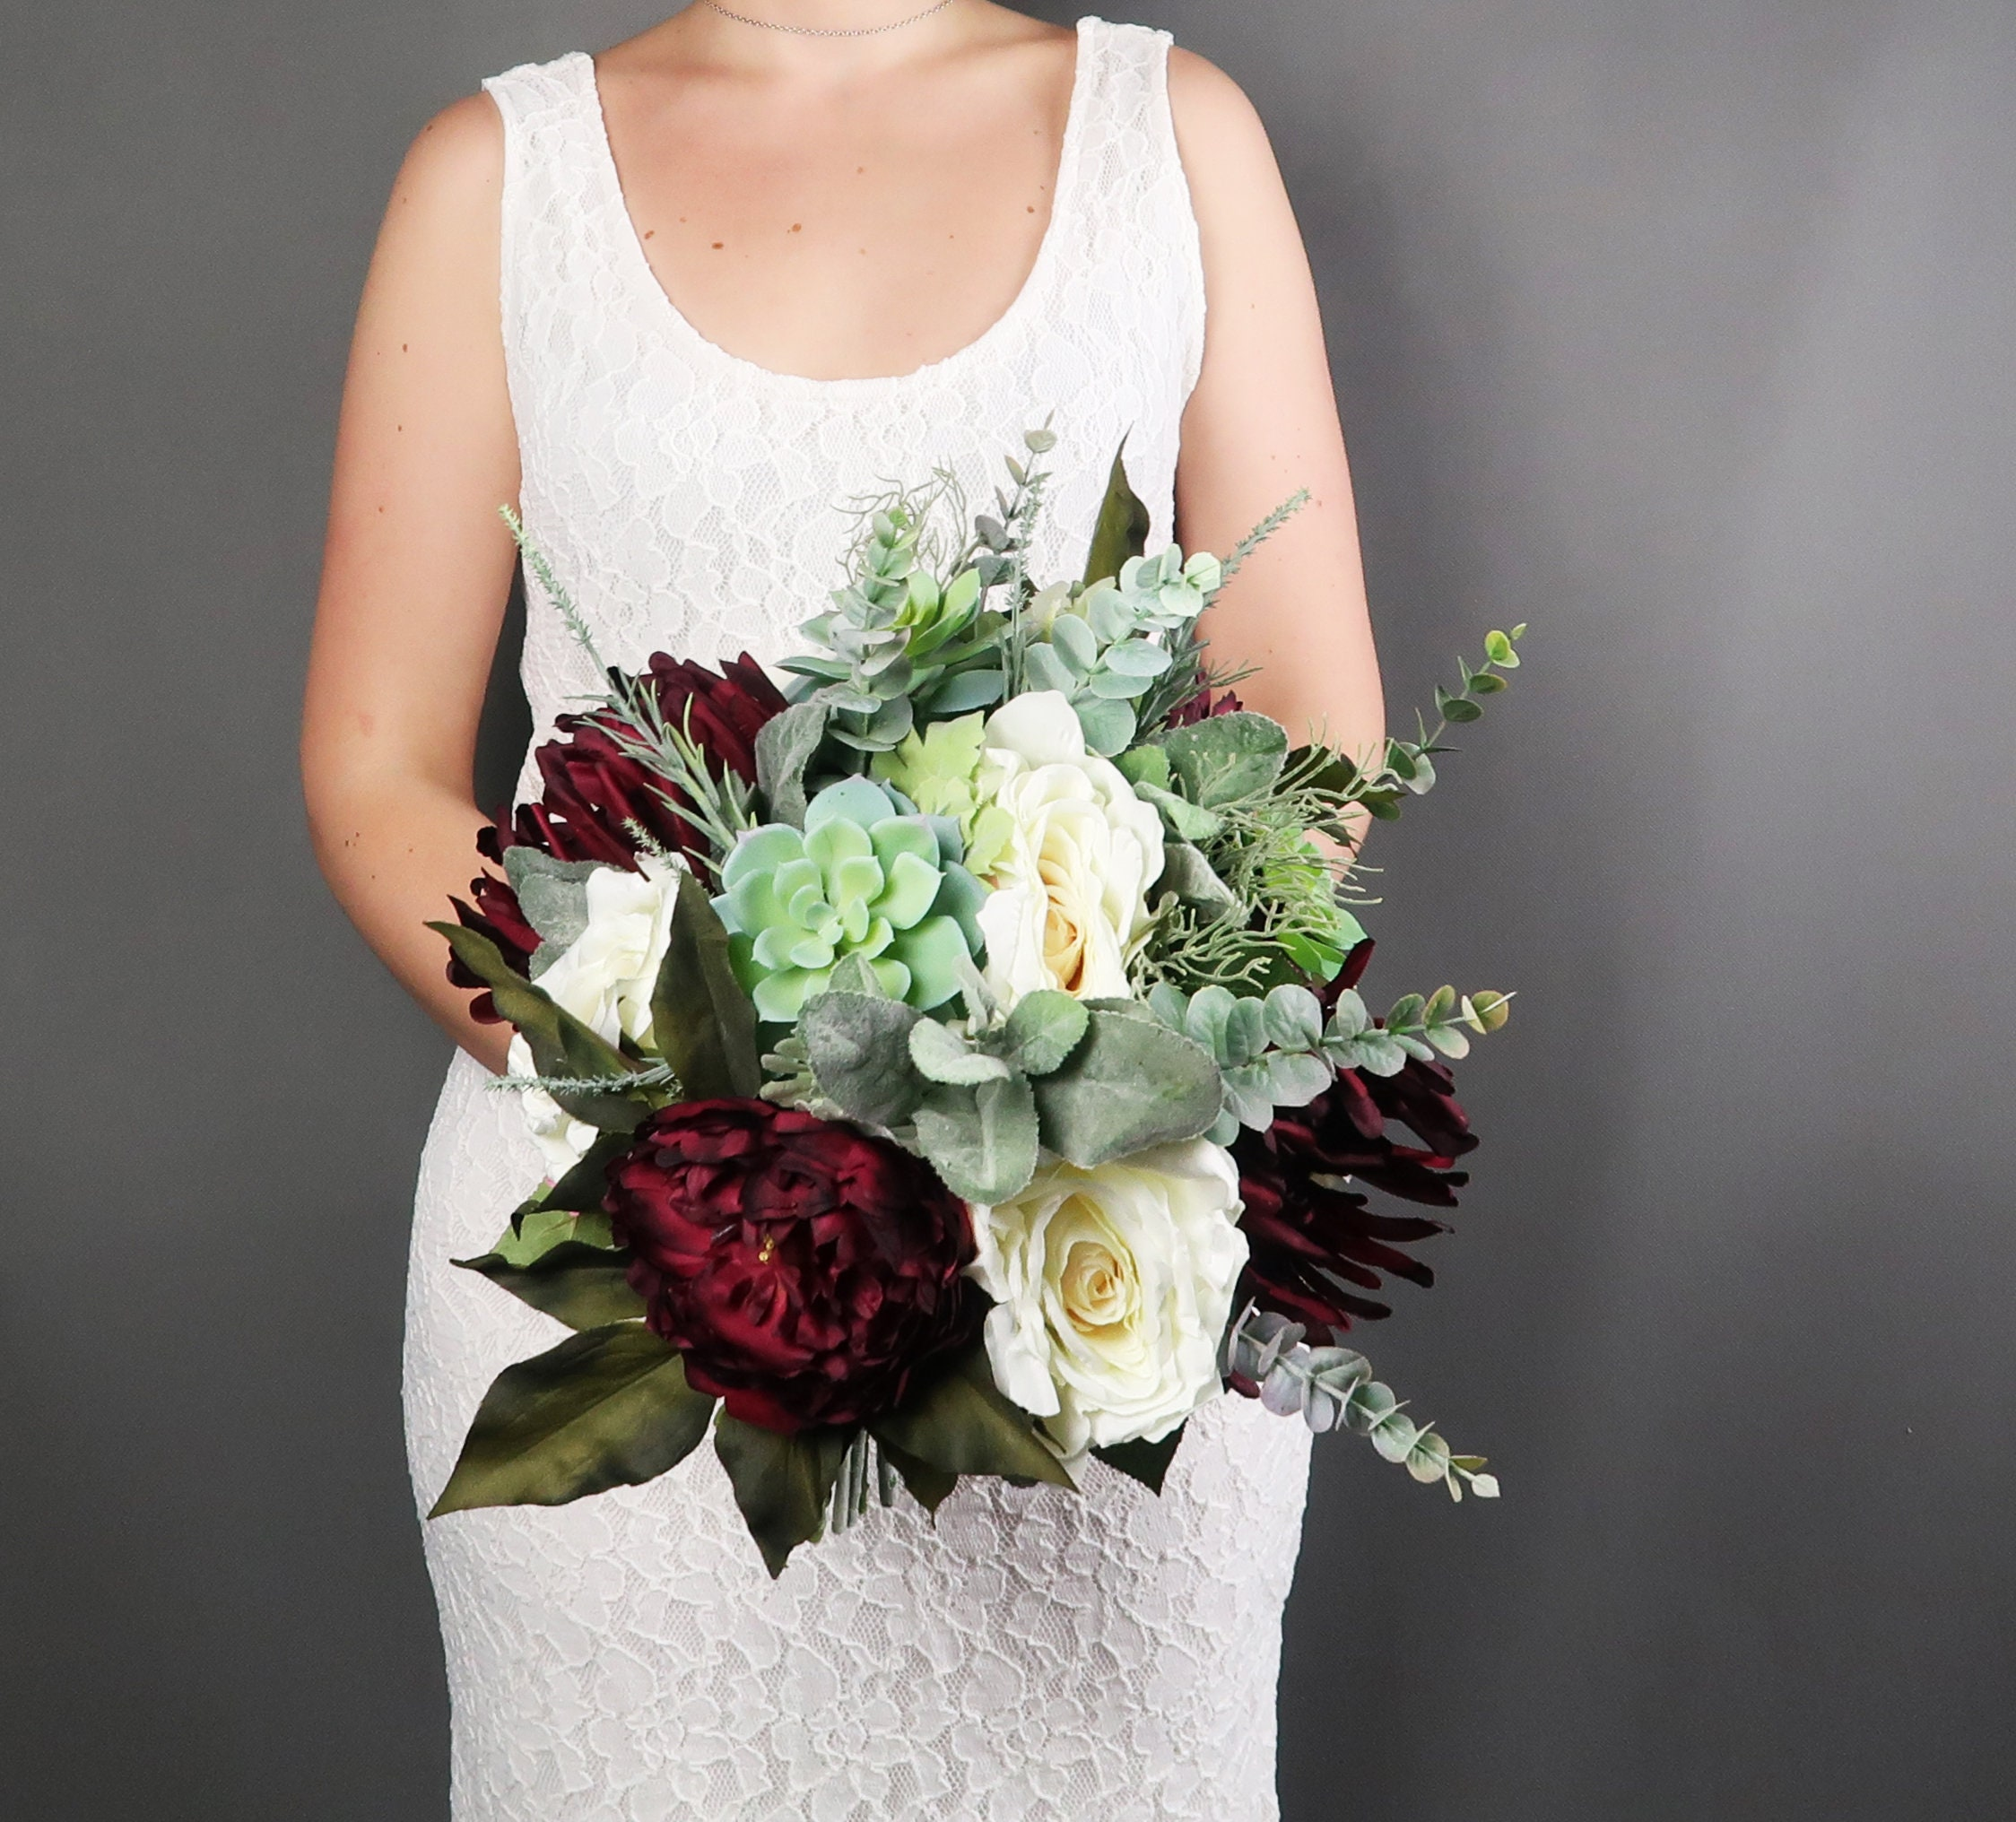 Making A Wedding Bouquet With Silk Flowers: Big Wedding Bouquet, Realistic Silk Flowers In Burgundy